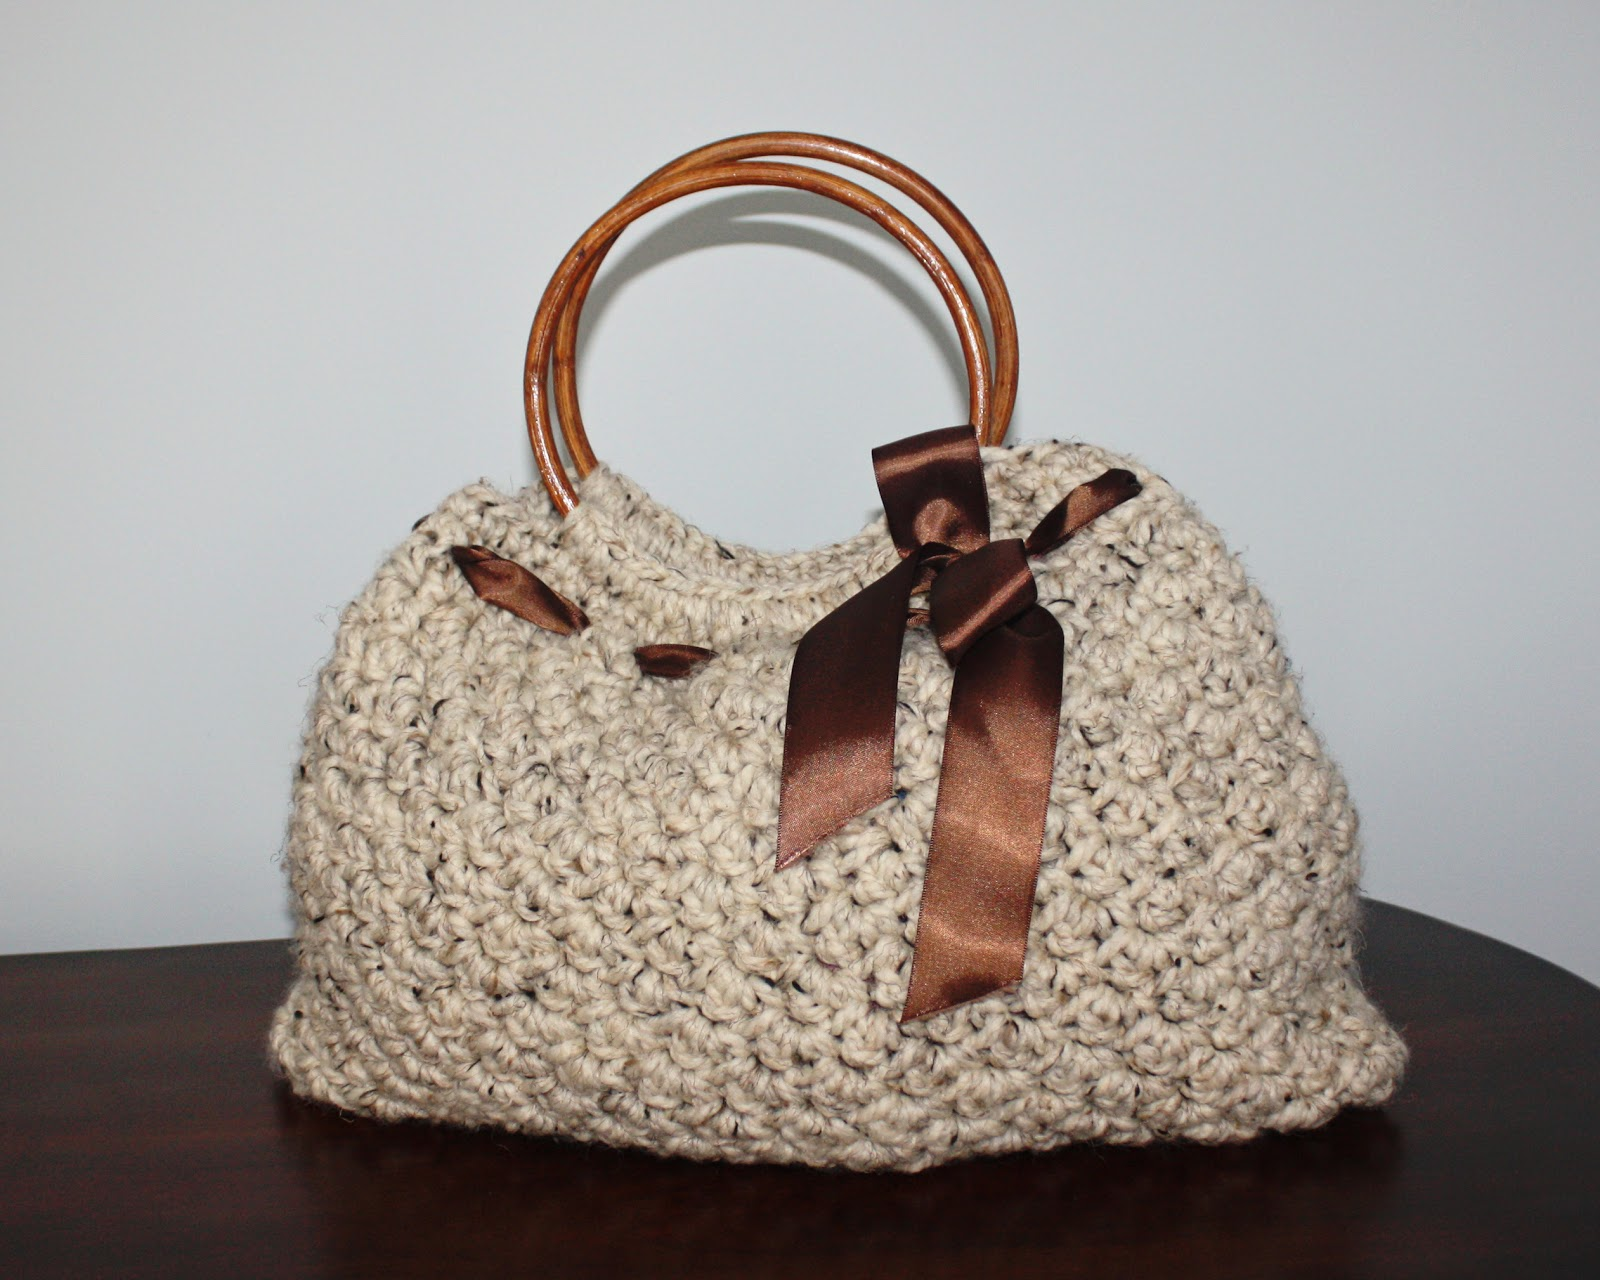 Free Crochet Handbag Patterns : Pretty Darn Adorable Crochet: Crochet Handbag/Purse